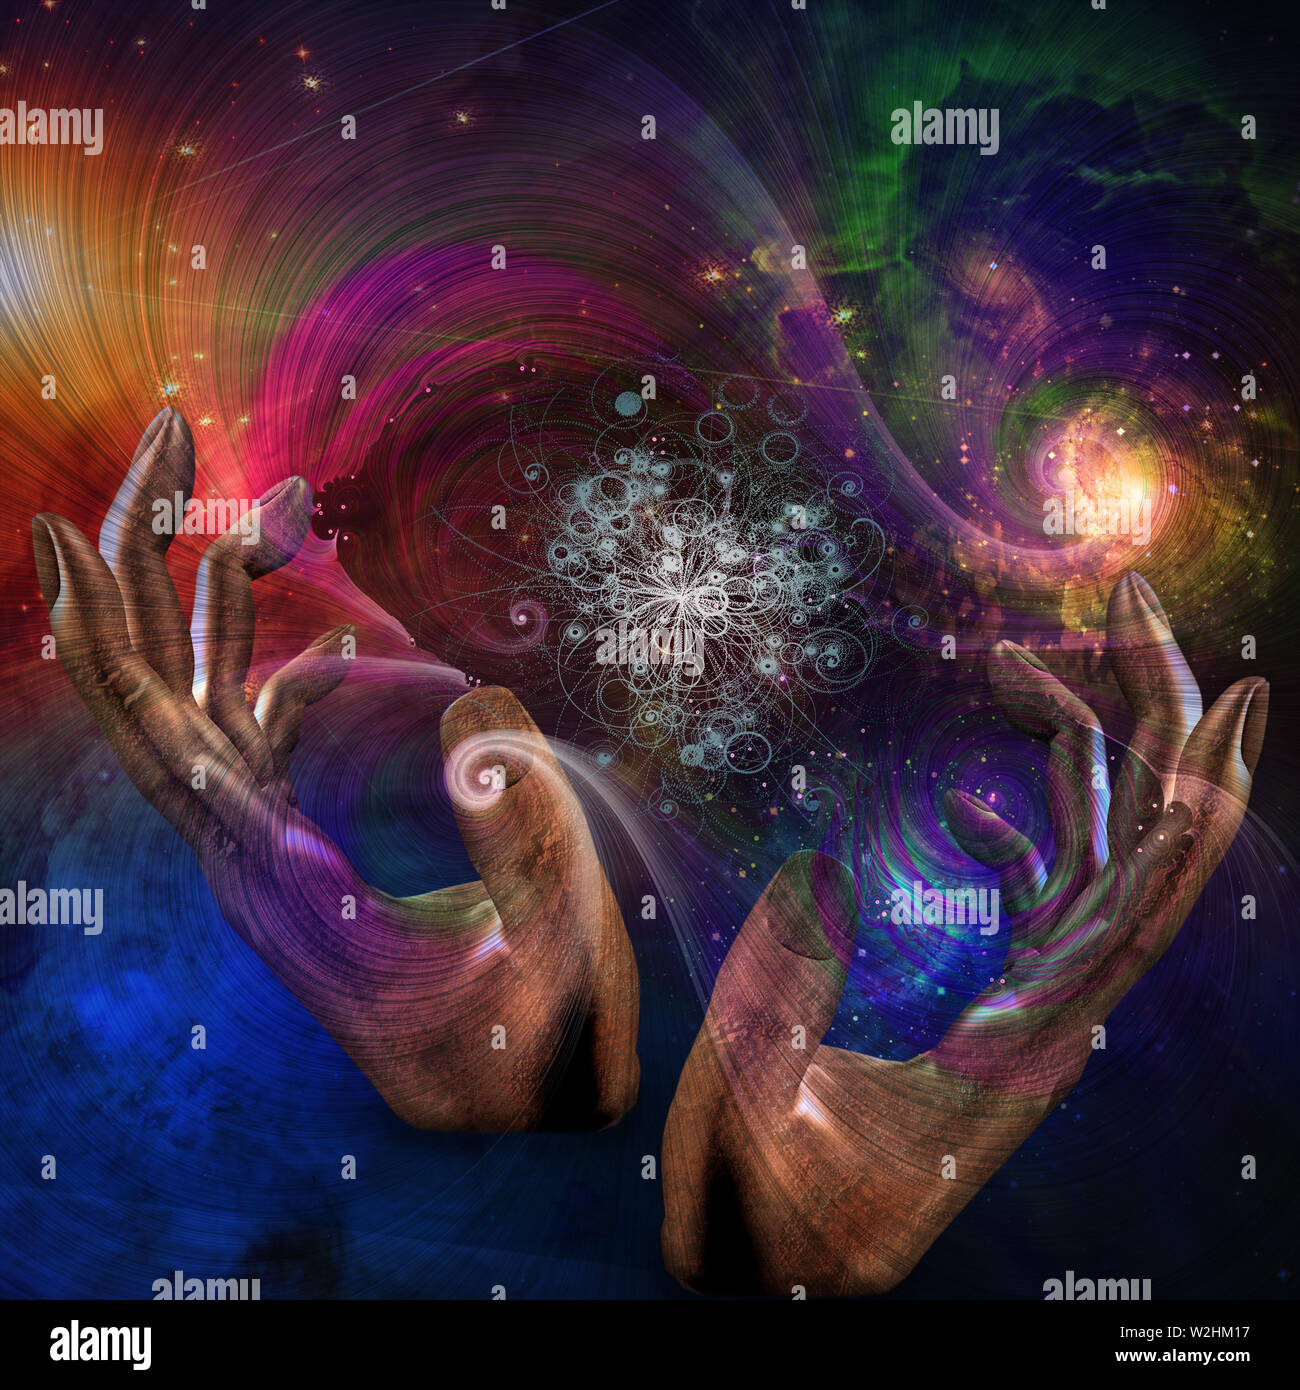 Hands moving through space - Stock Image